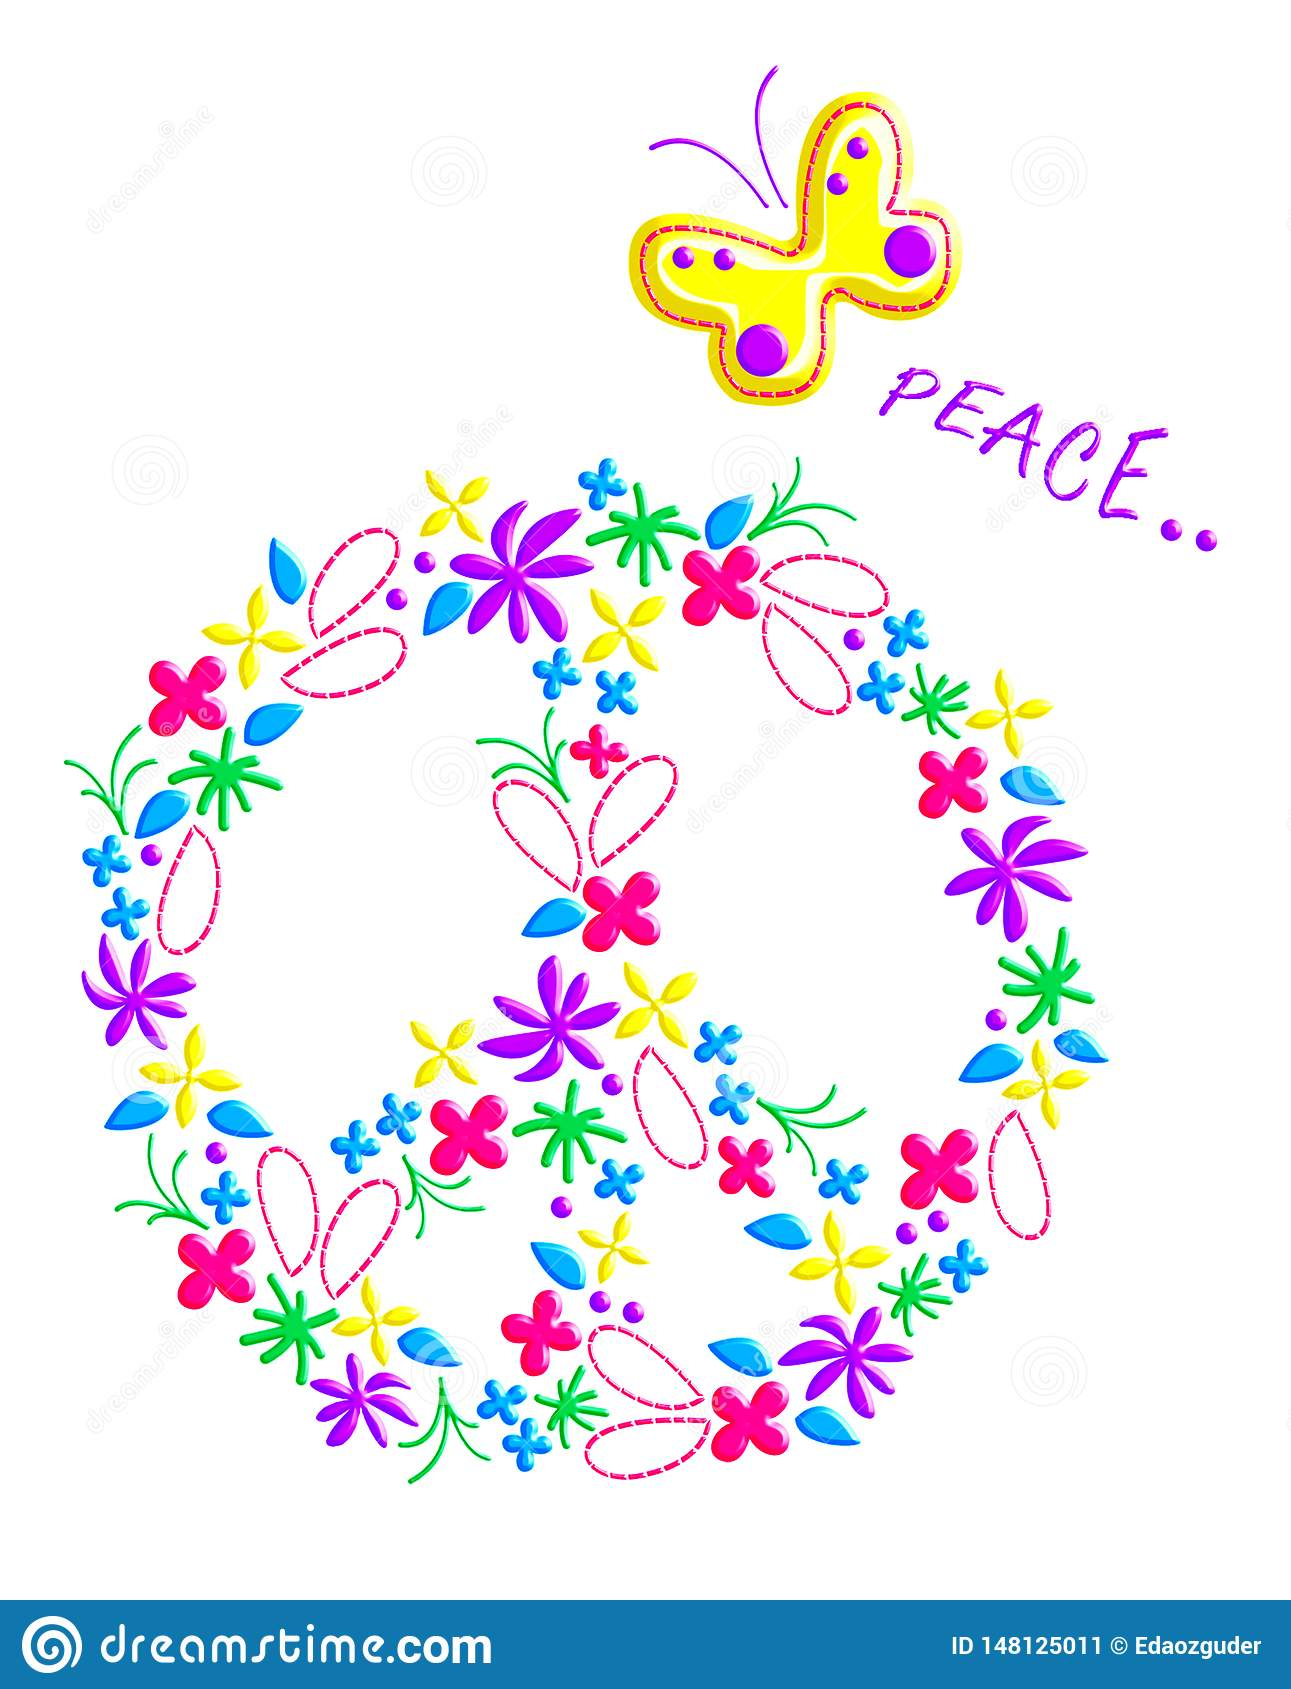 Peace sign pattern, graphics for kids, t-shirt print